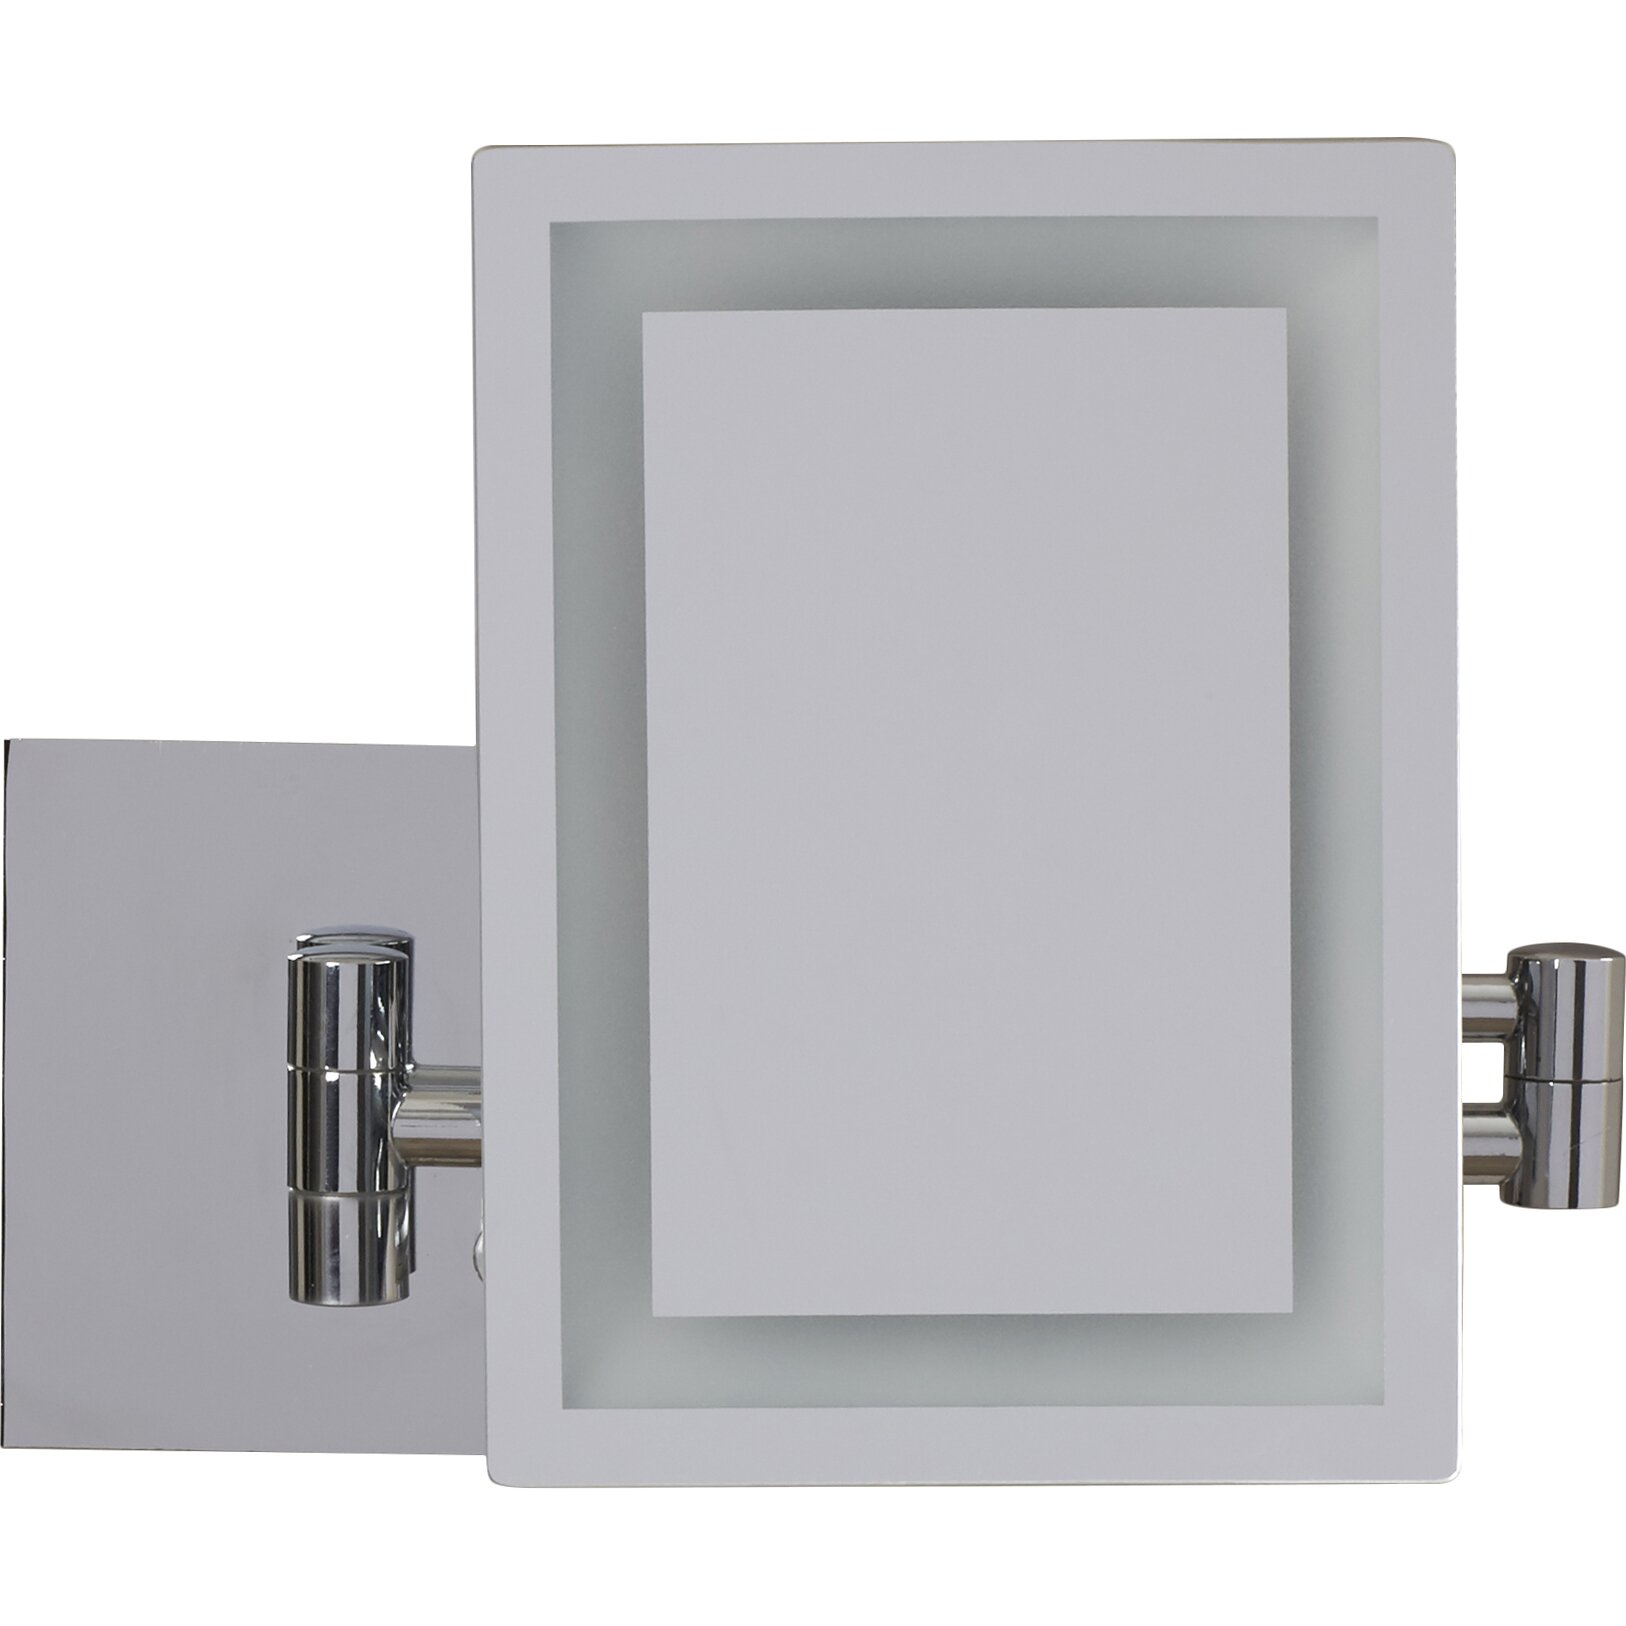 Led Wall Mirror Jerdon Mounted Wiring Diagram Pictures